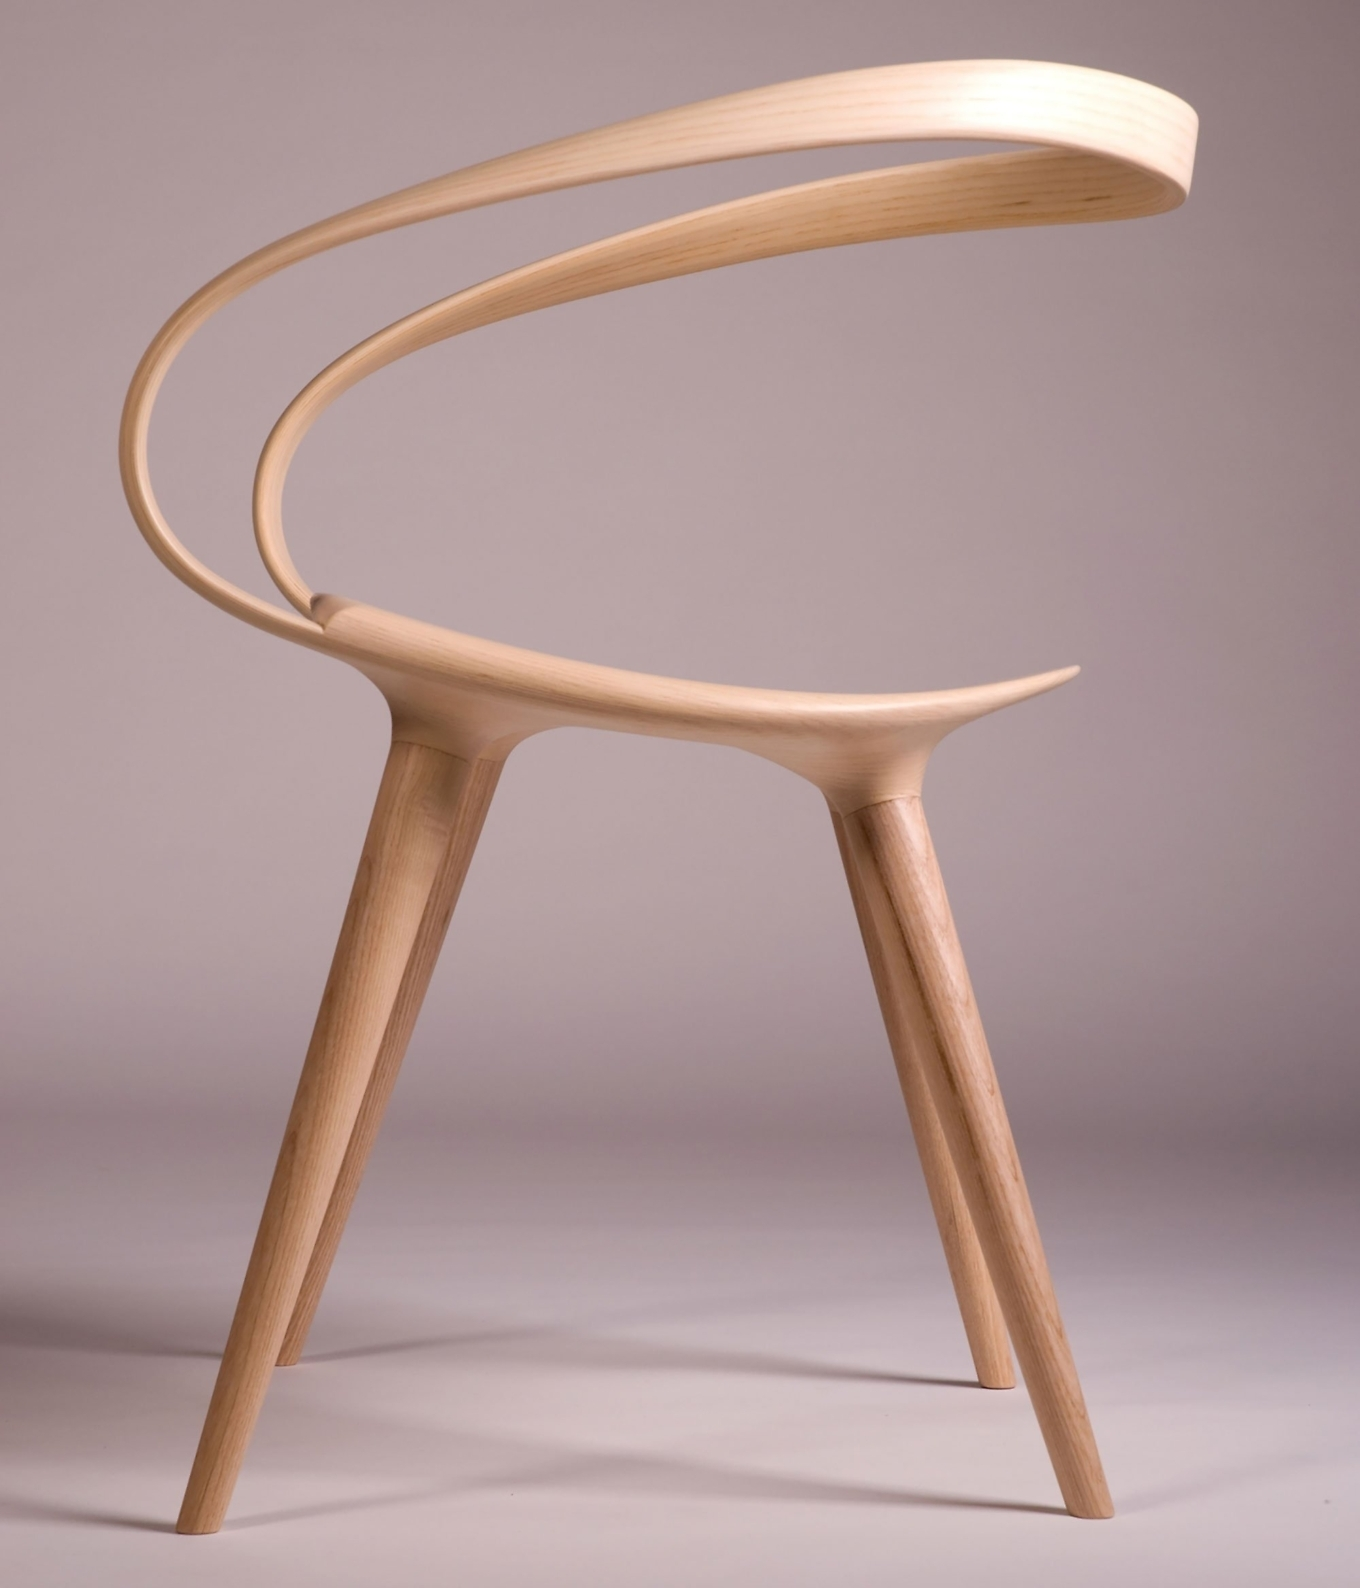 velo-chair-by-jan-waterston-gessato-3